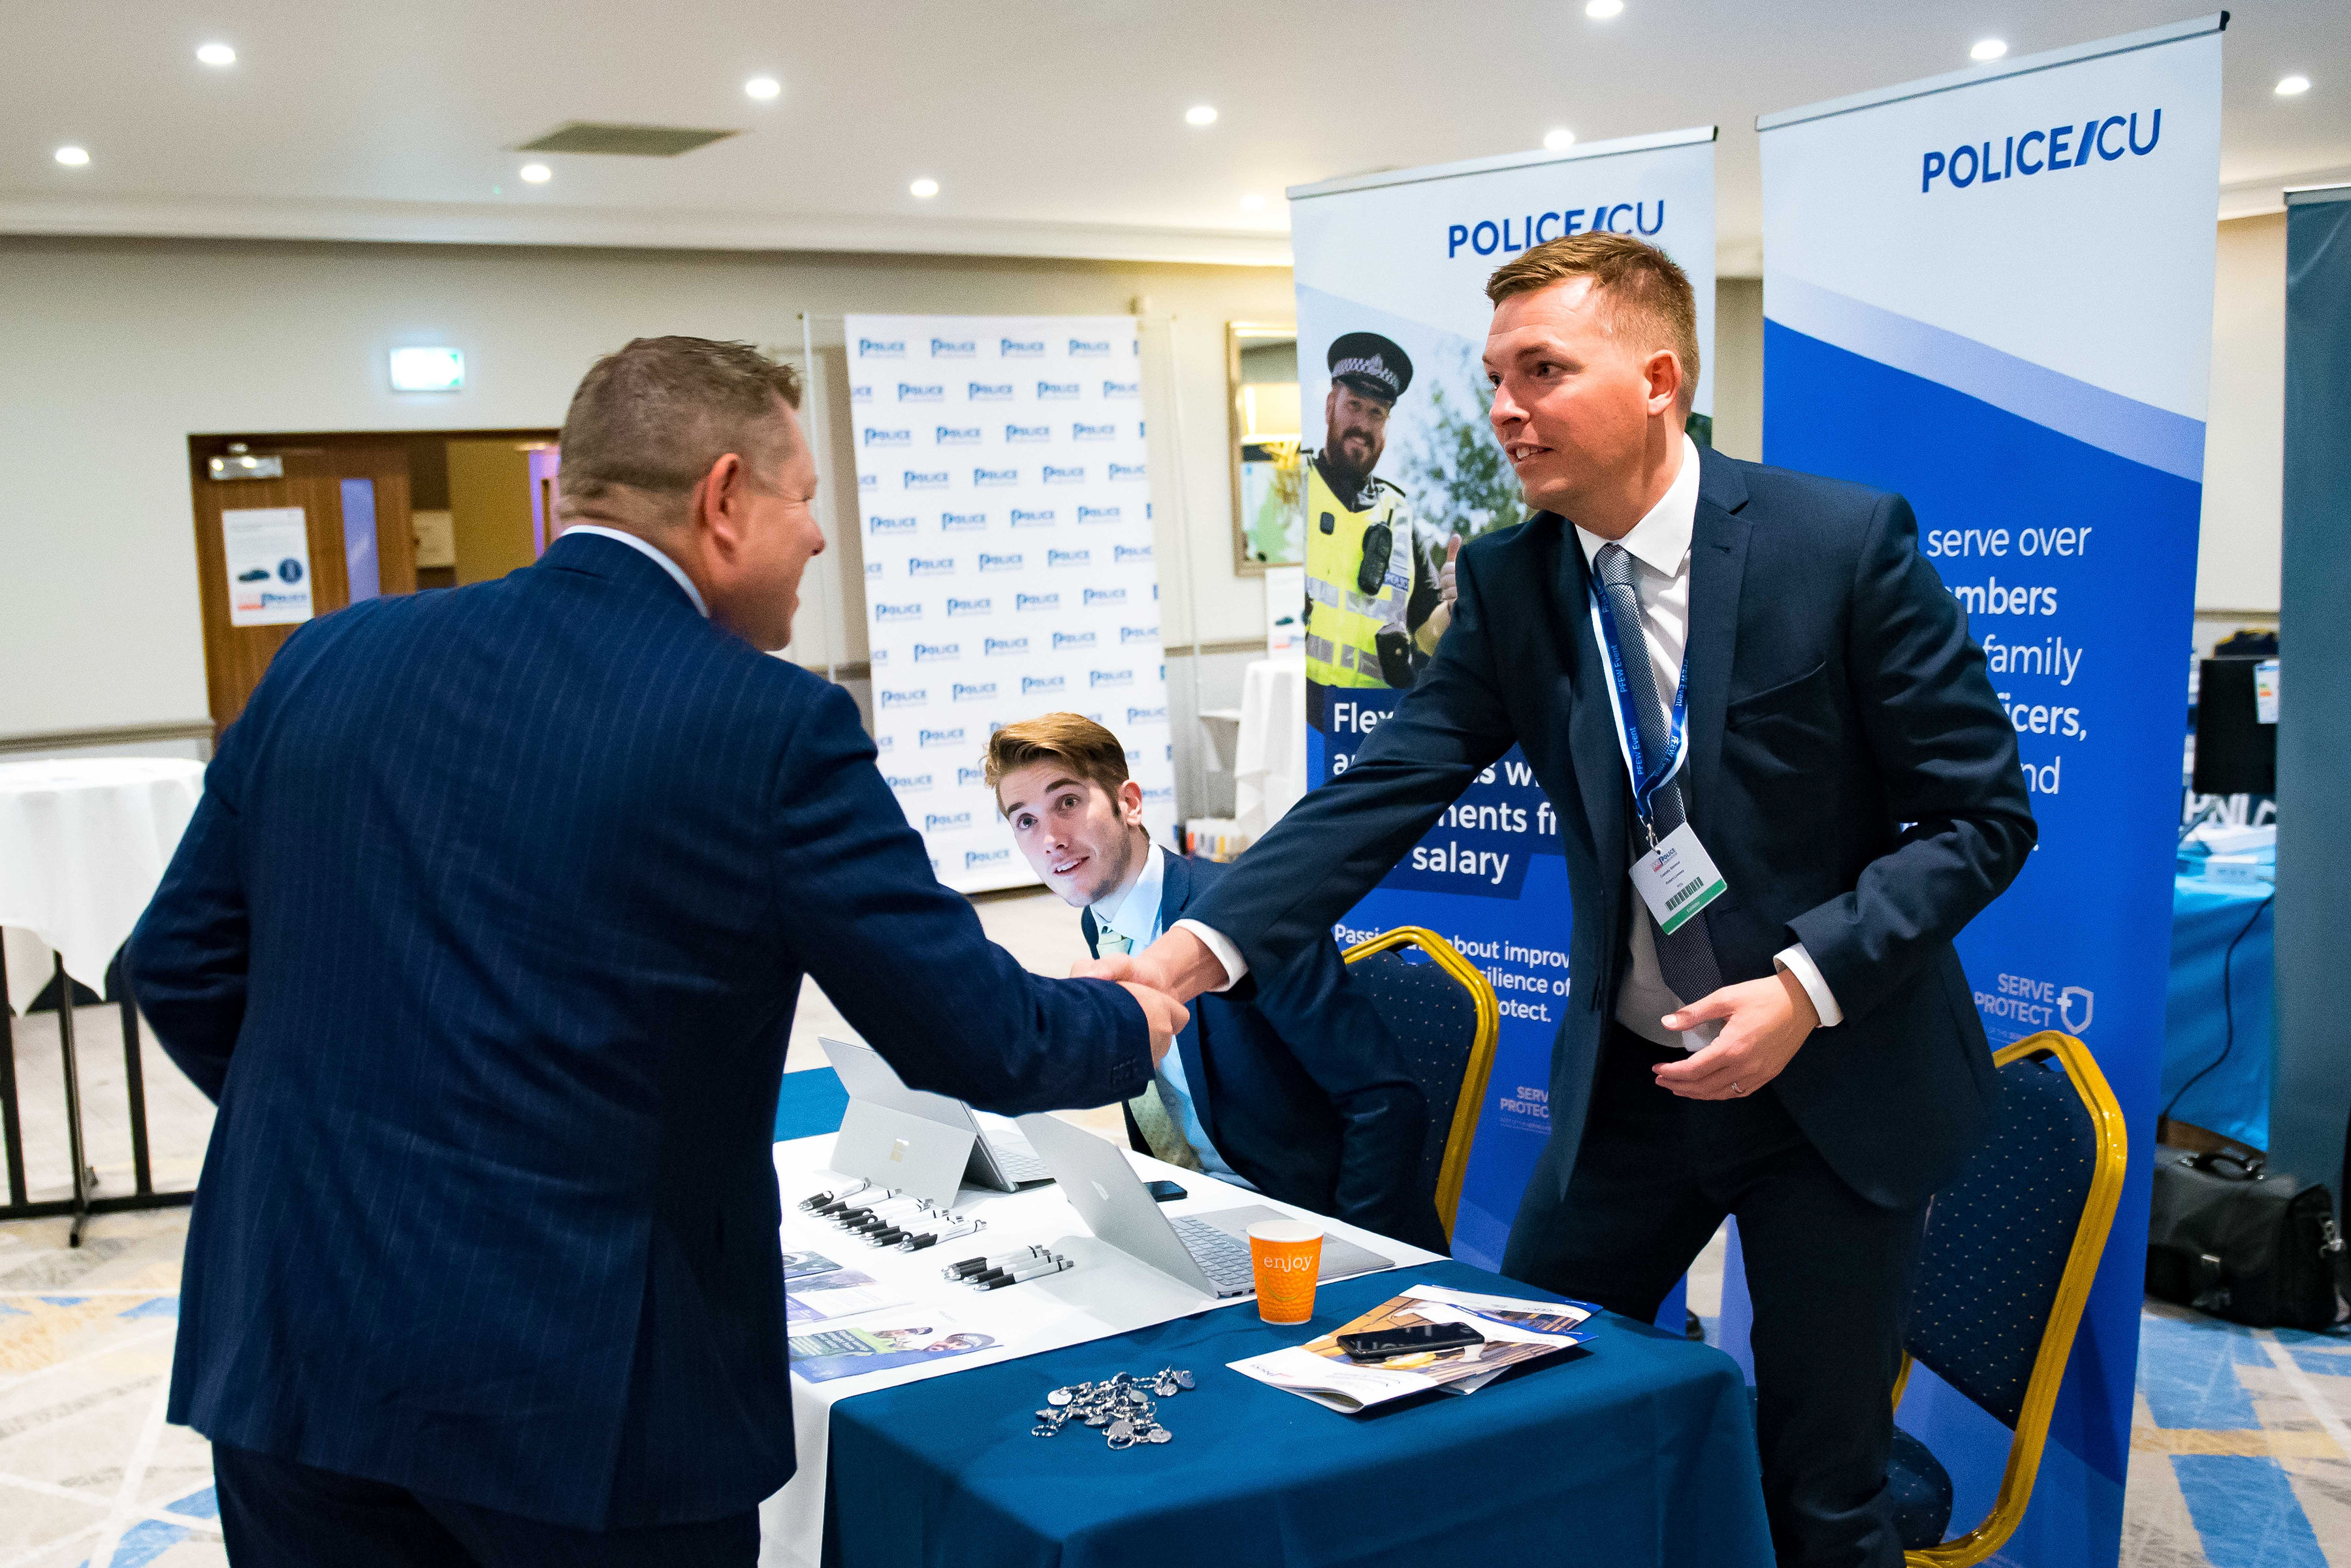 PFEW Chair John Apter (left) greets an exhibitor at the Custody Seminar, one of several events put on by PFEW this year